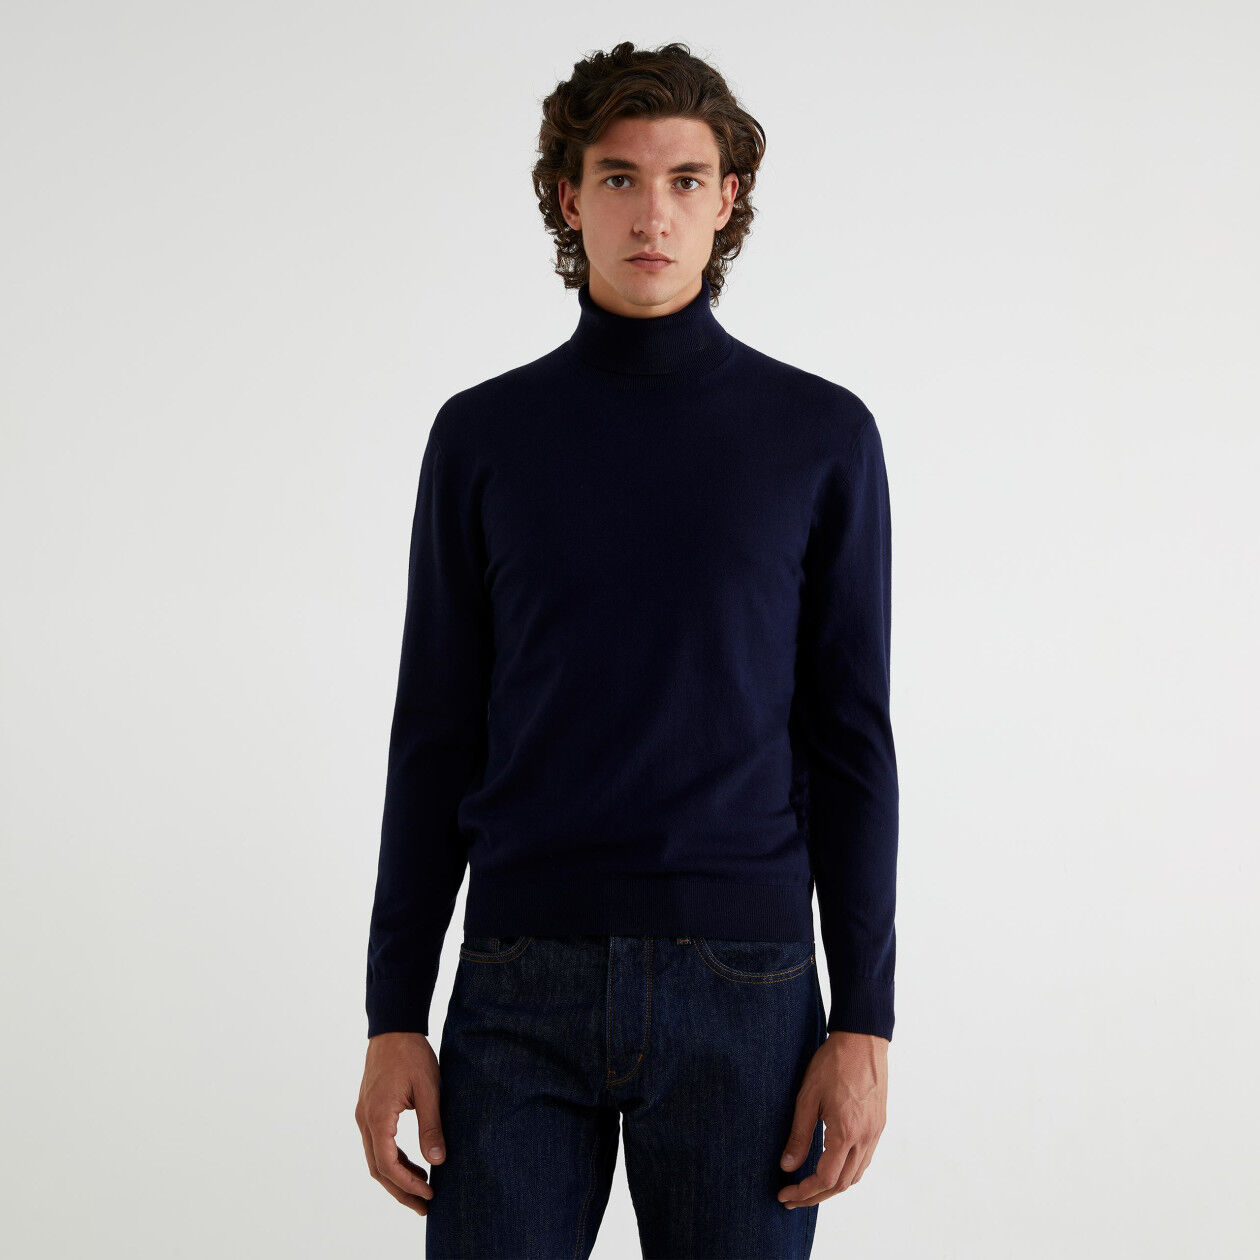 Tricot cotton turtleneck